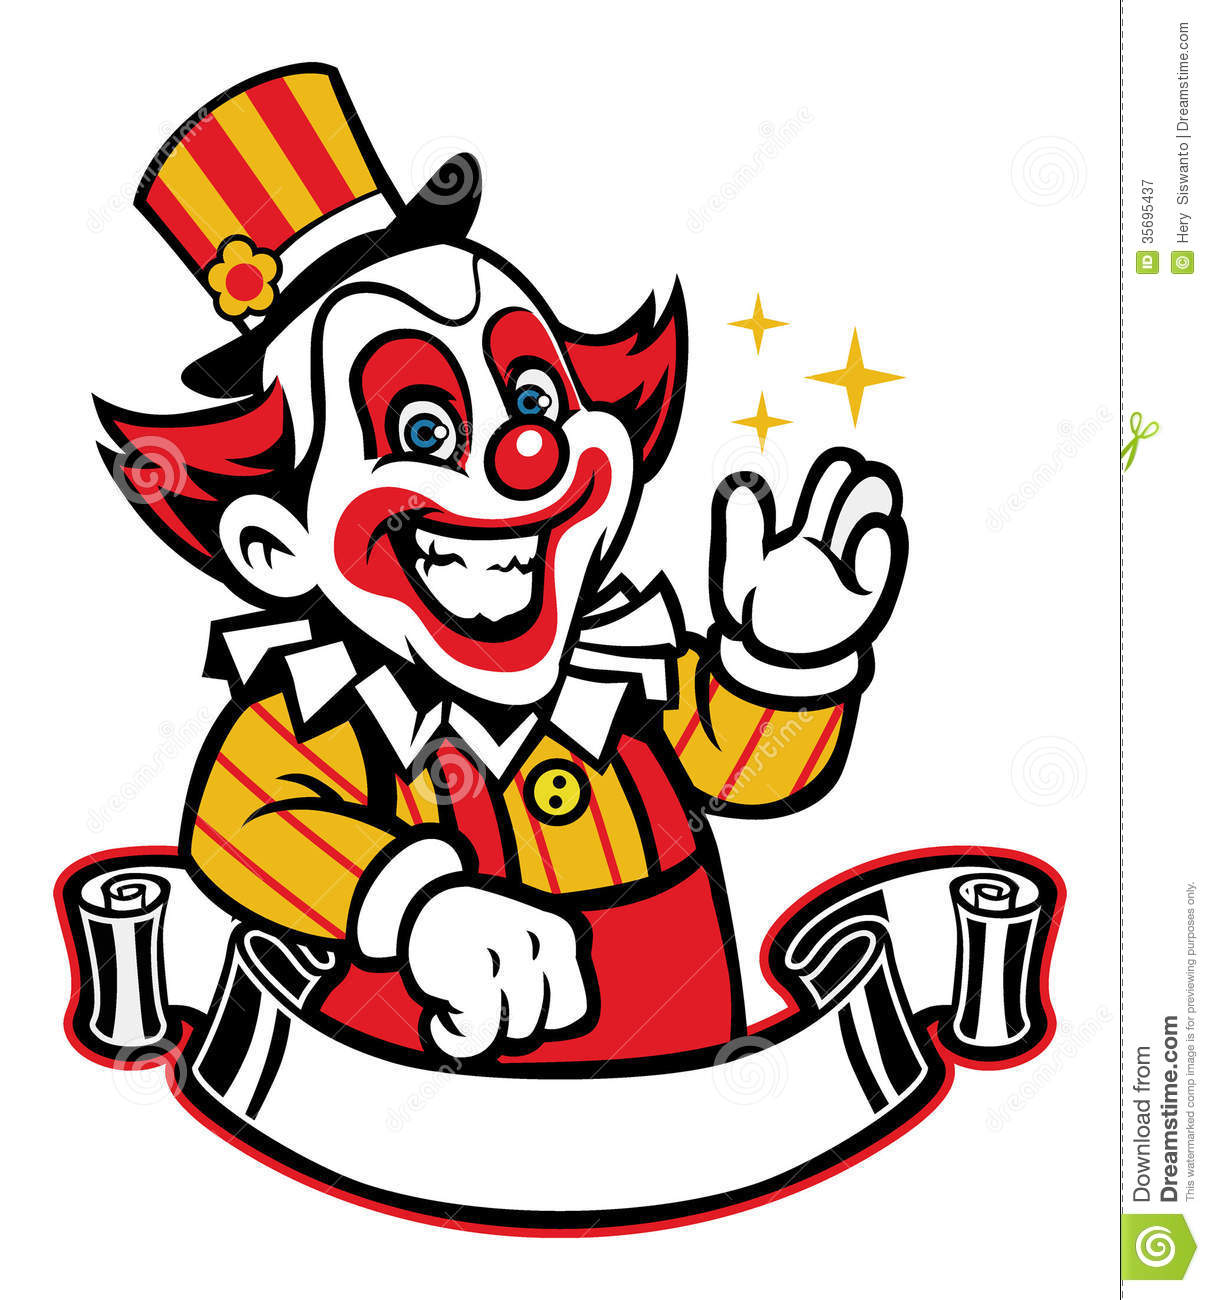 clown royalty free stock photography image 35695437 clipart clown gratuit crown clipart free